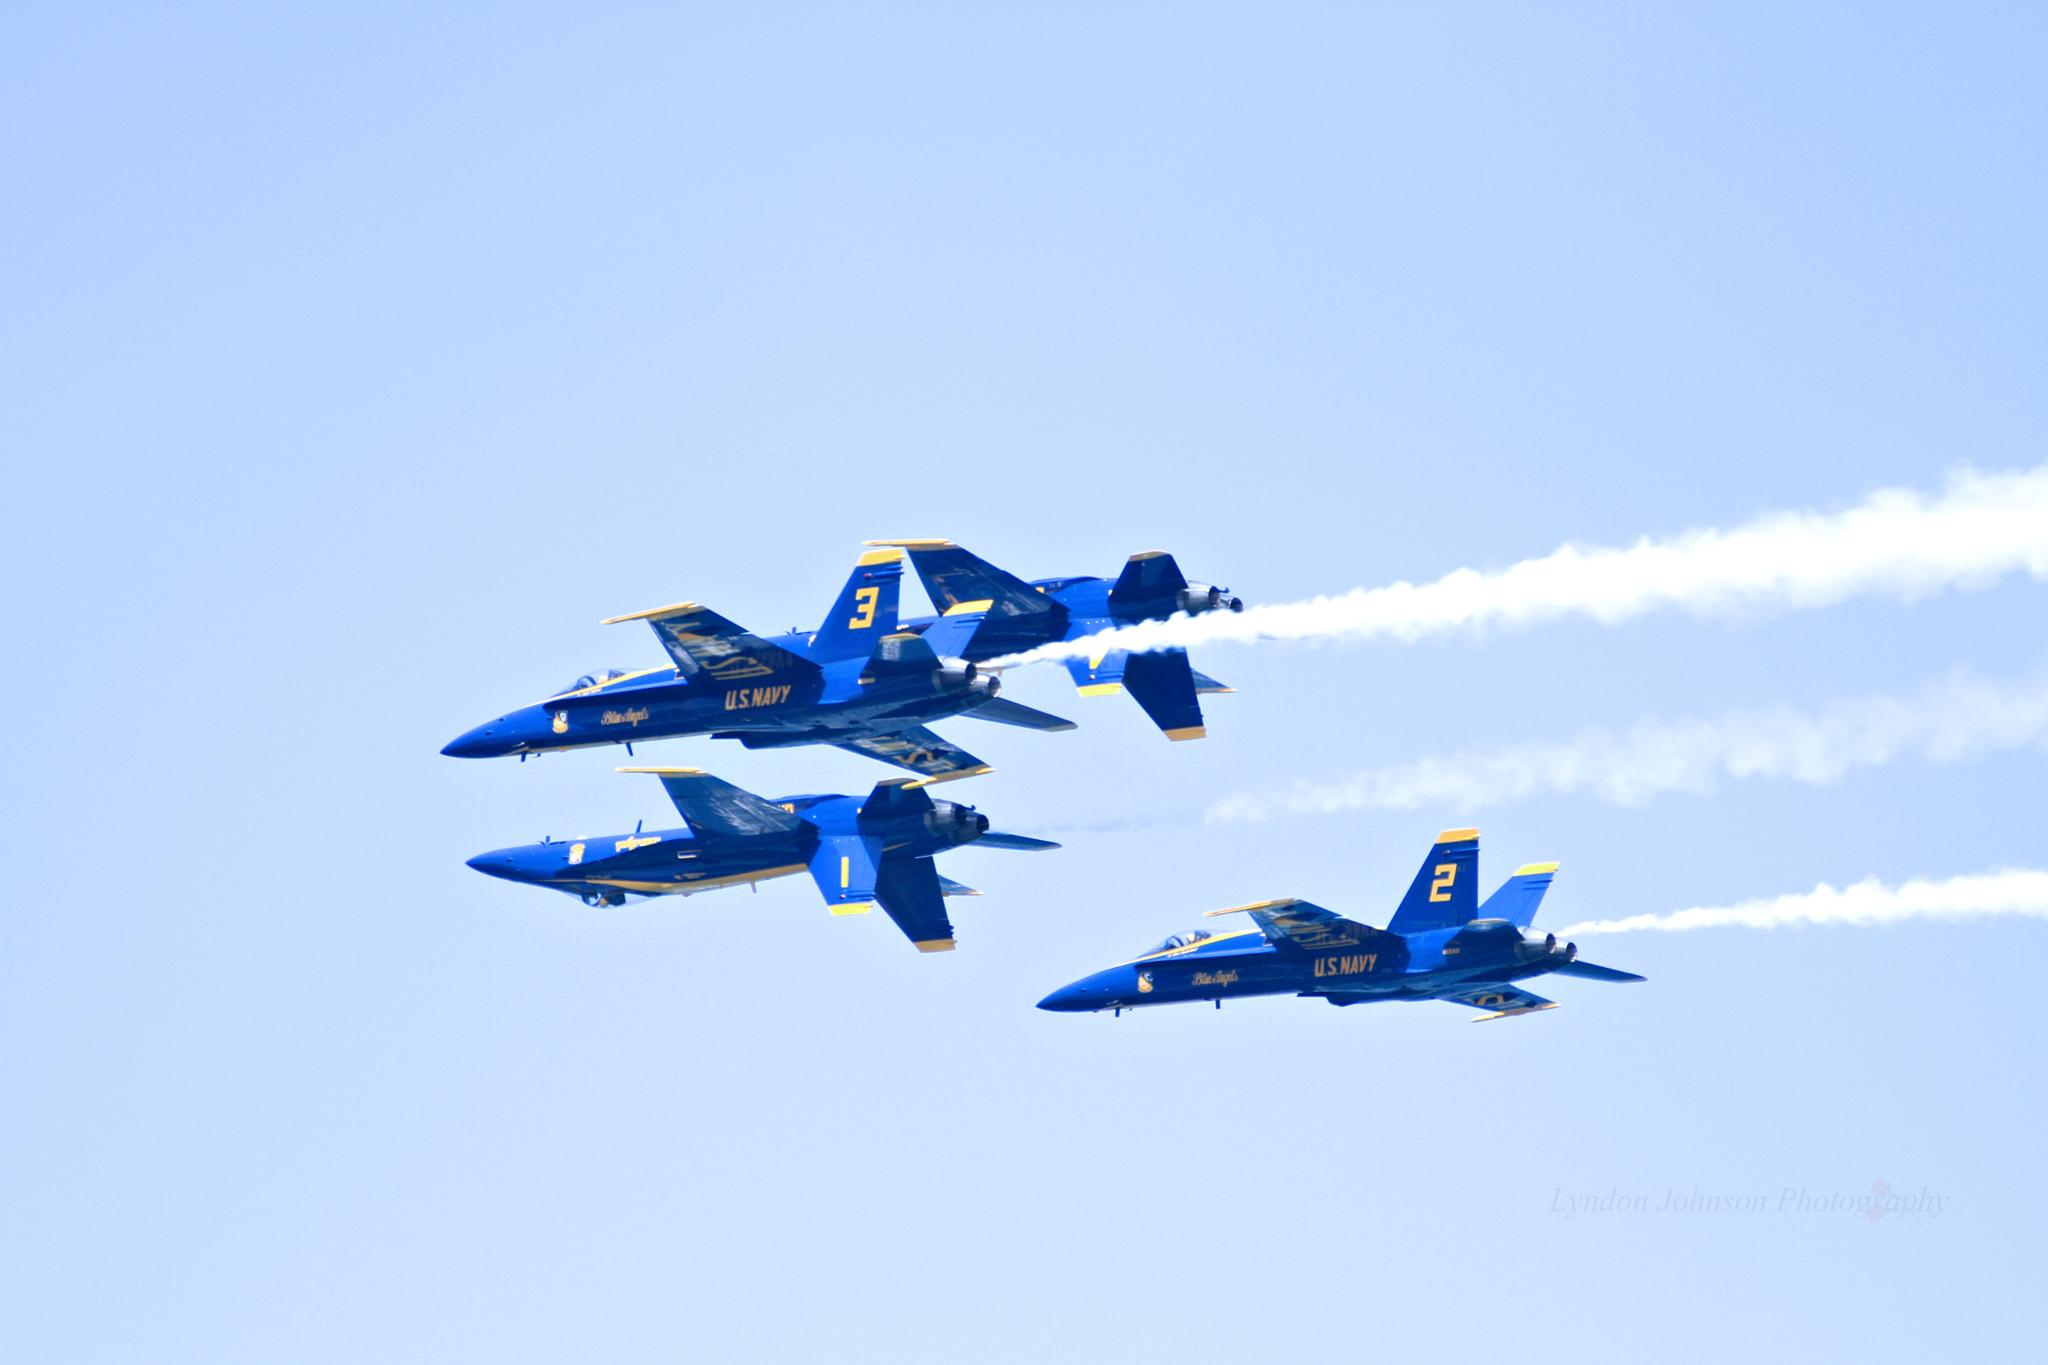 Blue Angels over Chicago by Lyndon Johnson